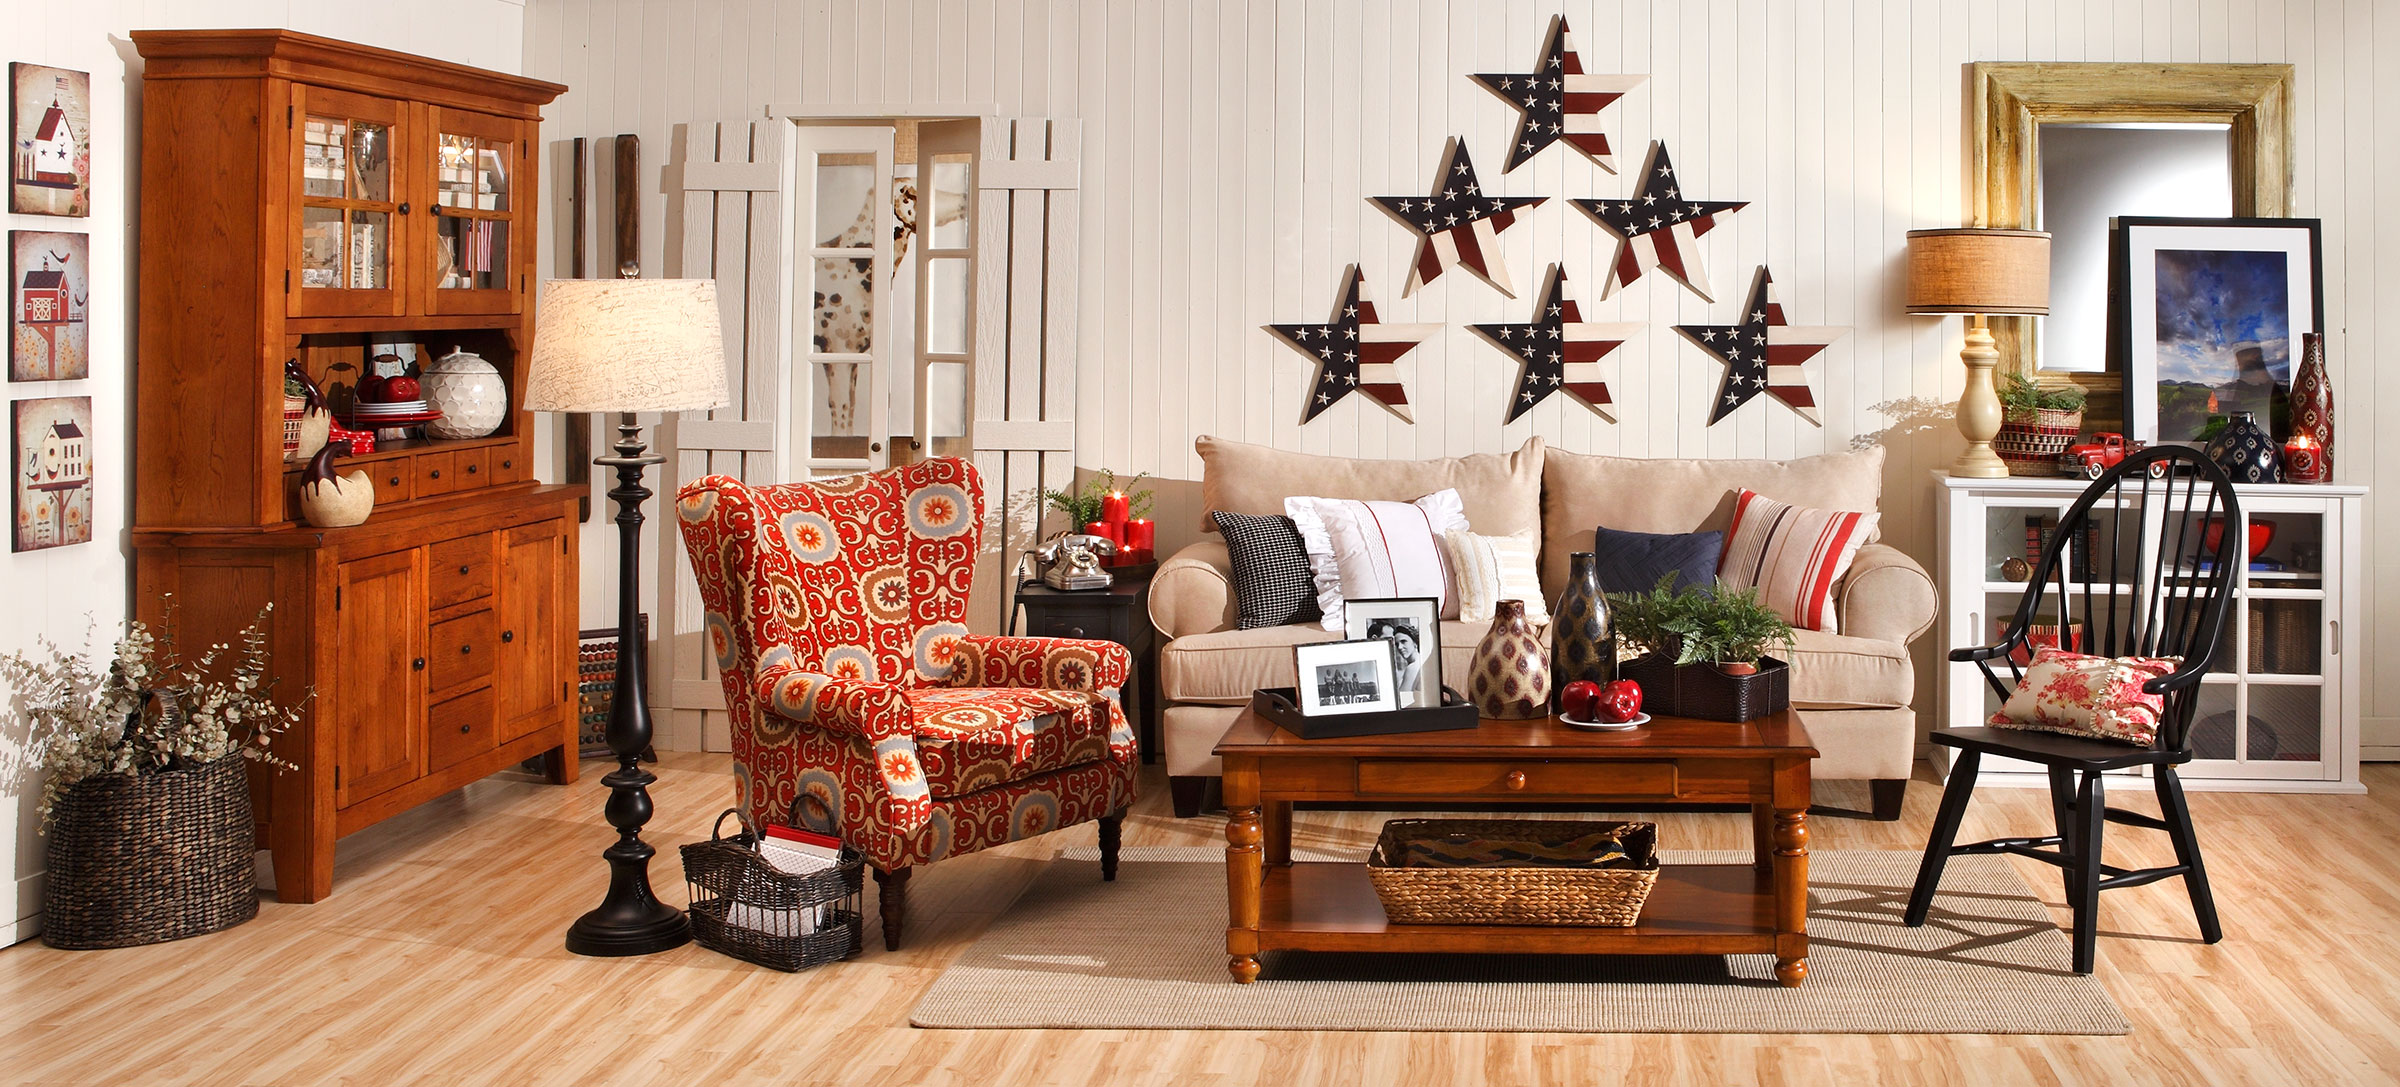 28+ [ americana home decor ] | 7 best images about patriotic decor